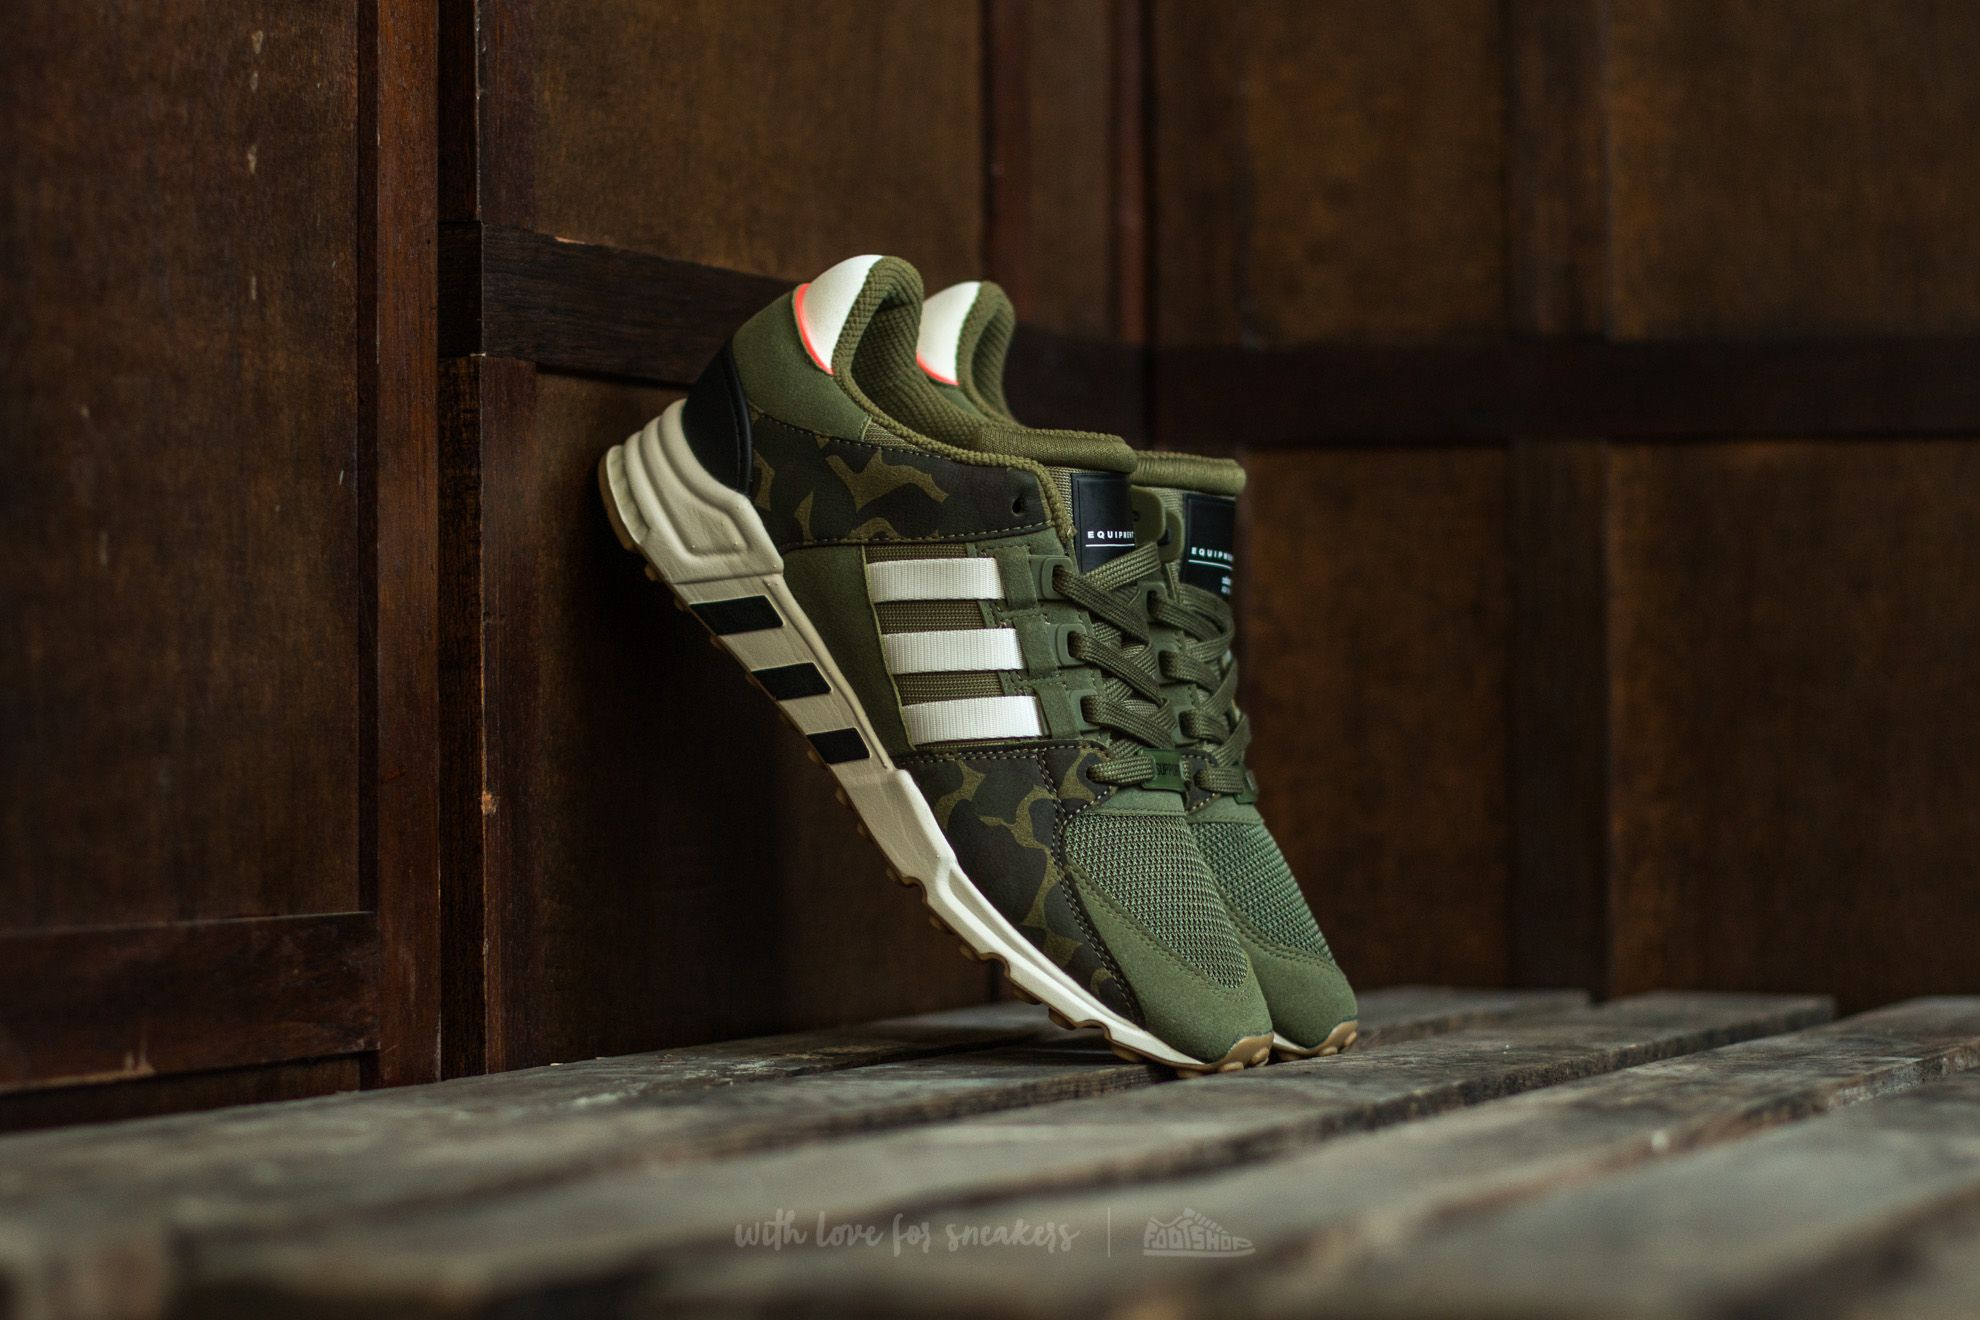 lowest price df185 dbee5 adidas EQT Support RF. Olive Cargo Off White Core Black